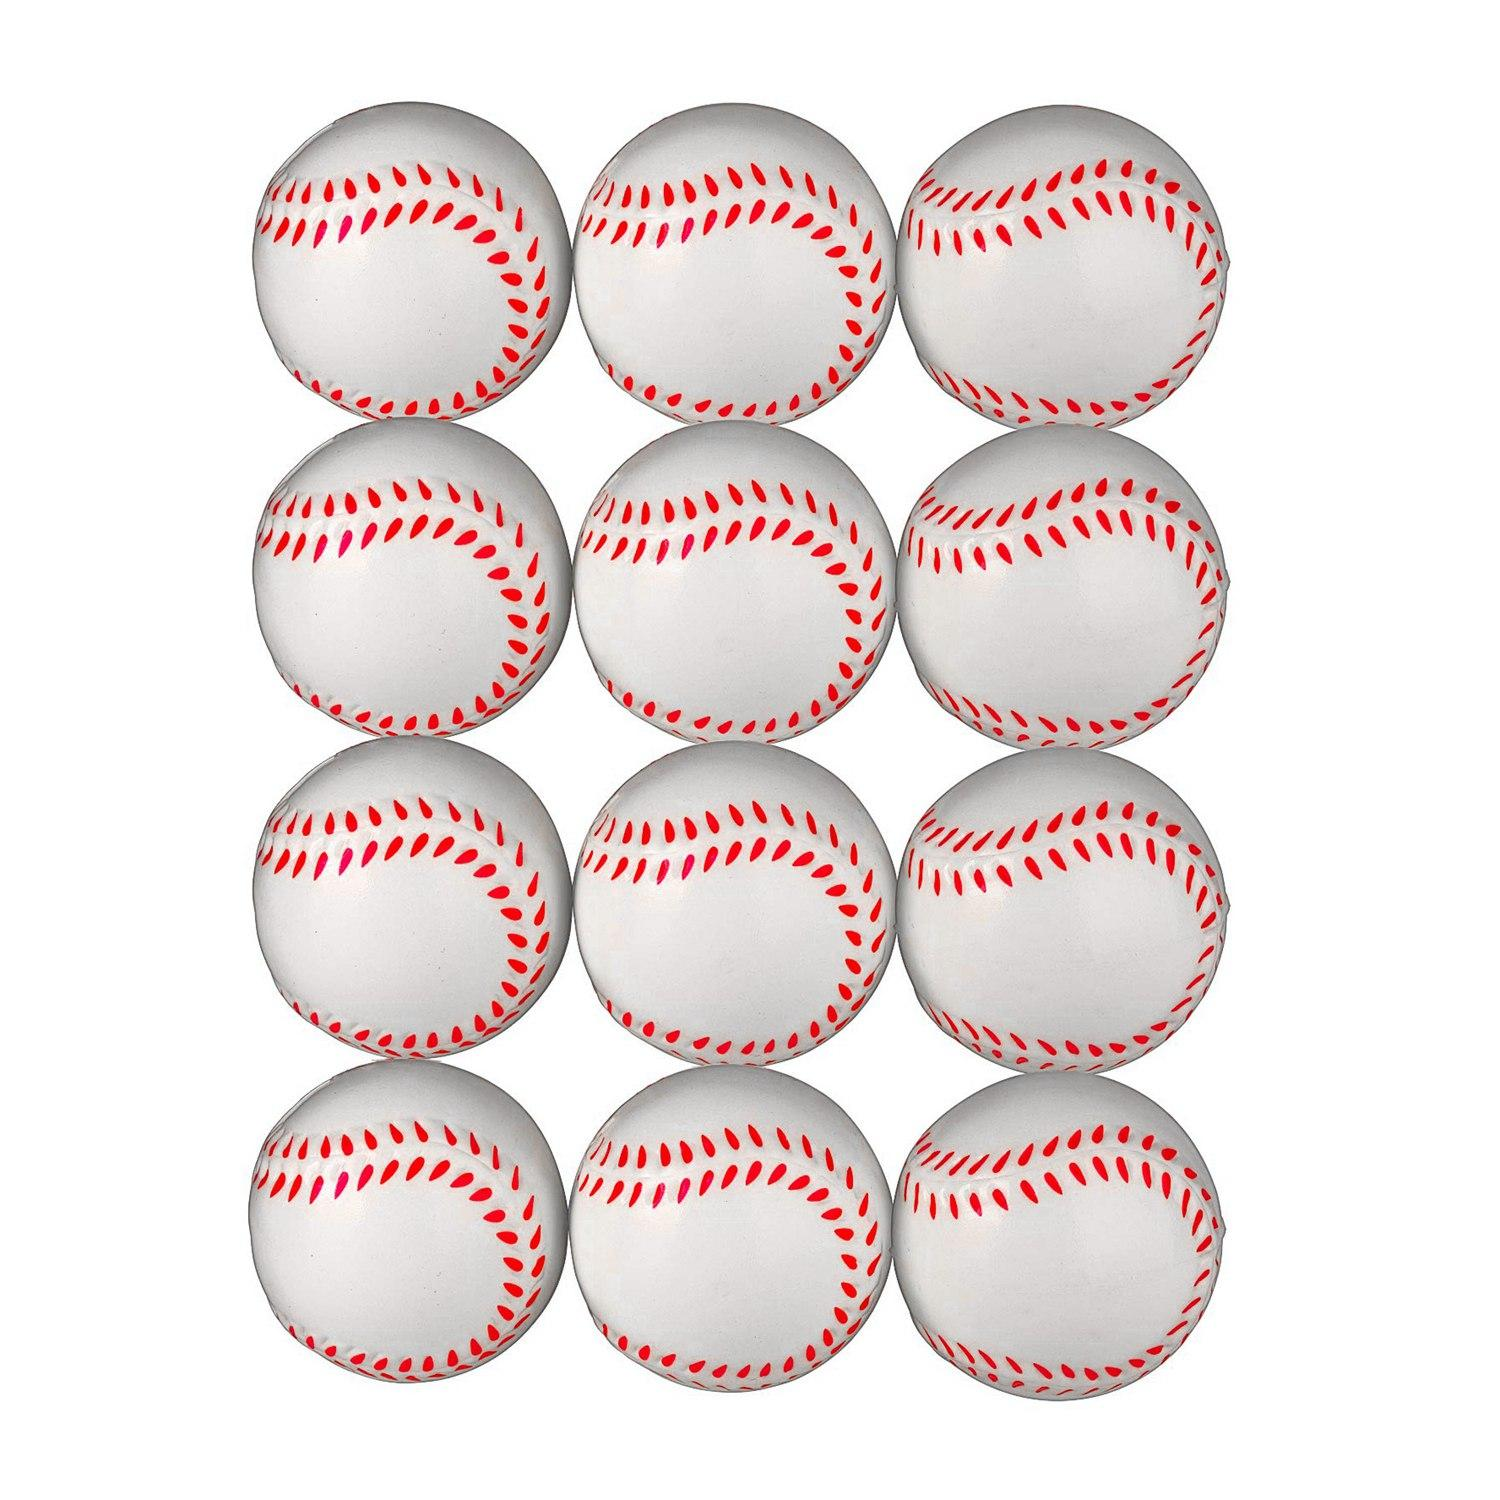 2 Sports Themed Foam Baseball Toys and Squeeze Stress Relief Balls Pack of 24 Bulk Party Favor Supplies /& Gifts for Kids Bedwina Mini Soft Baseballs